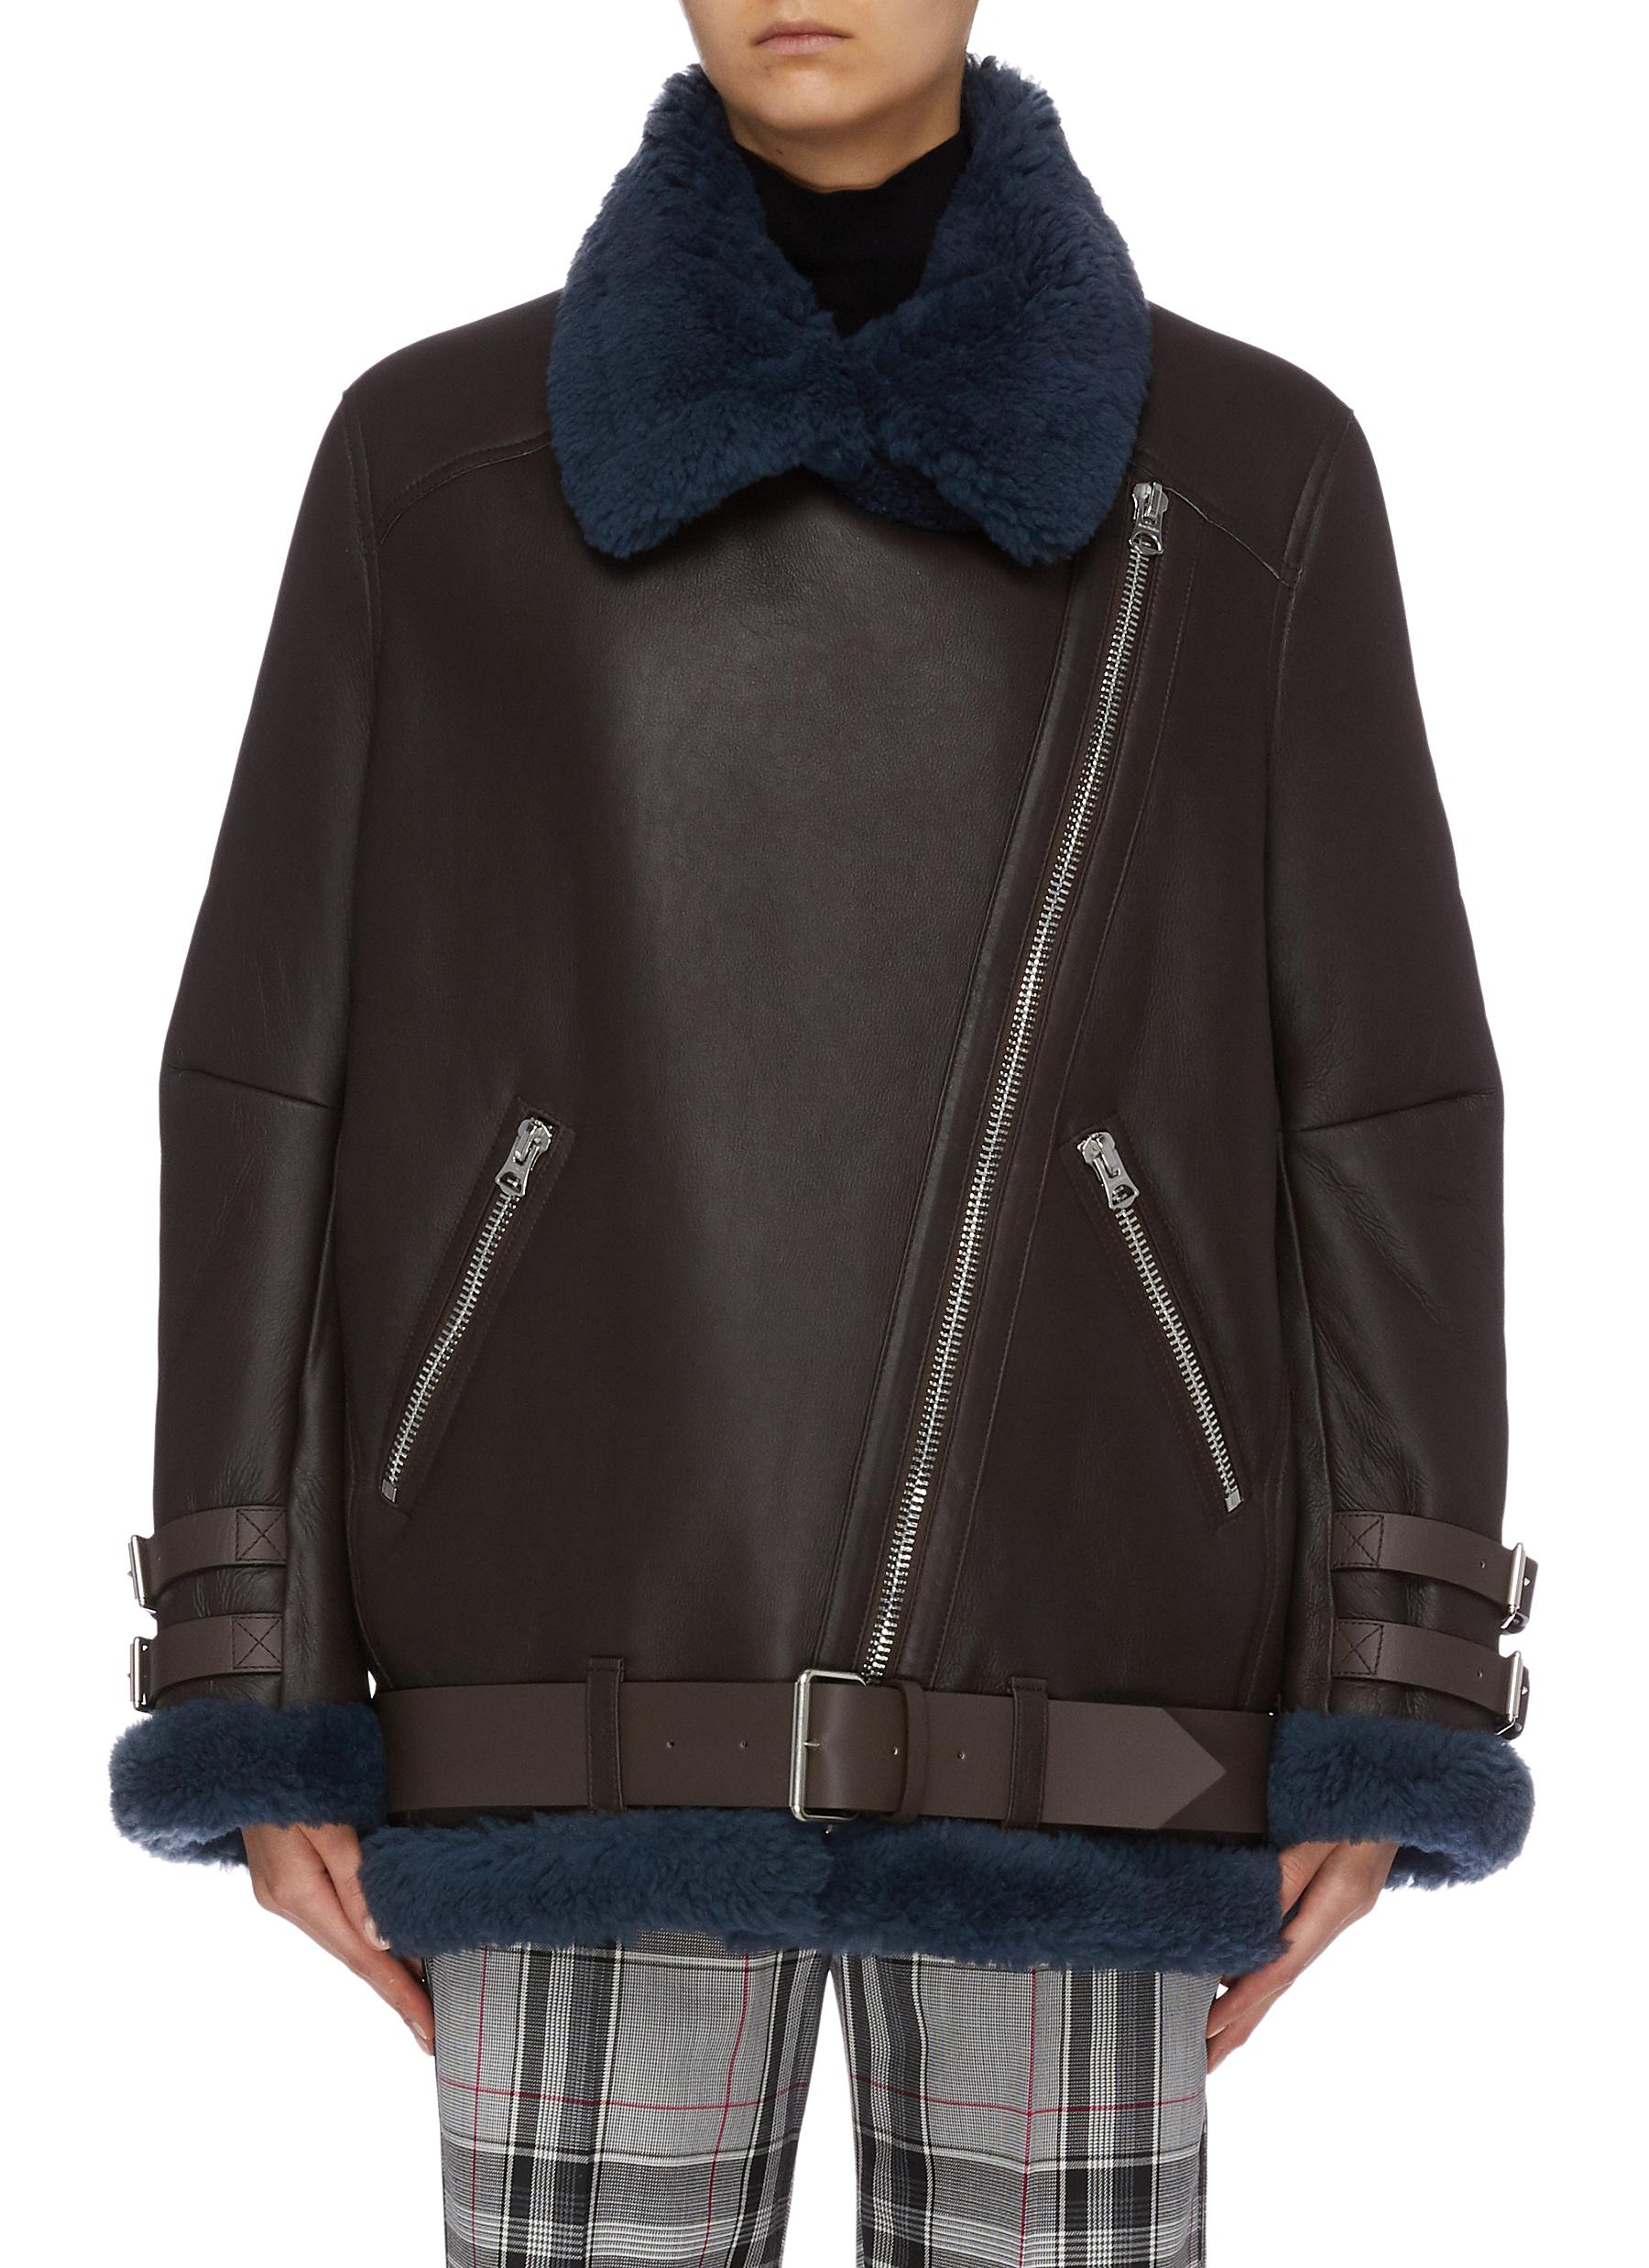 Oversized shearling aviator jacket by Acne Studios